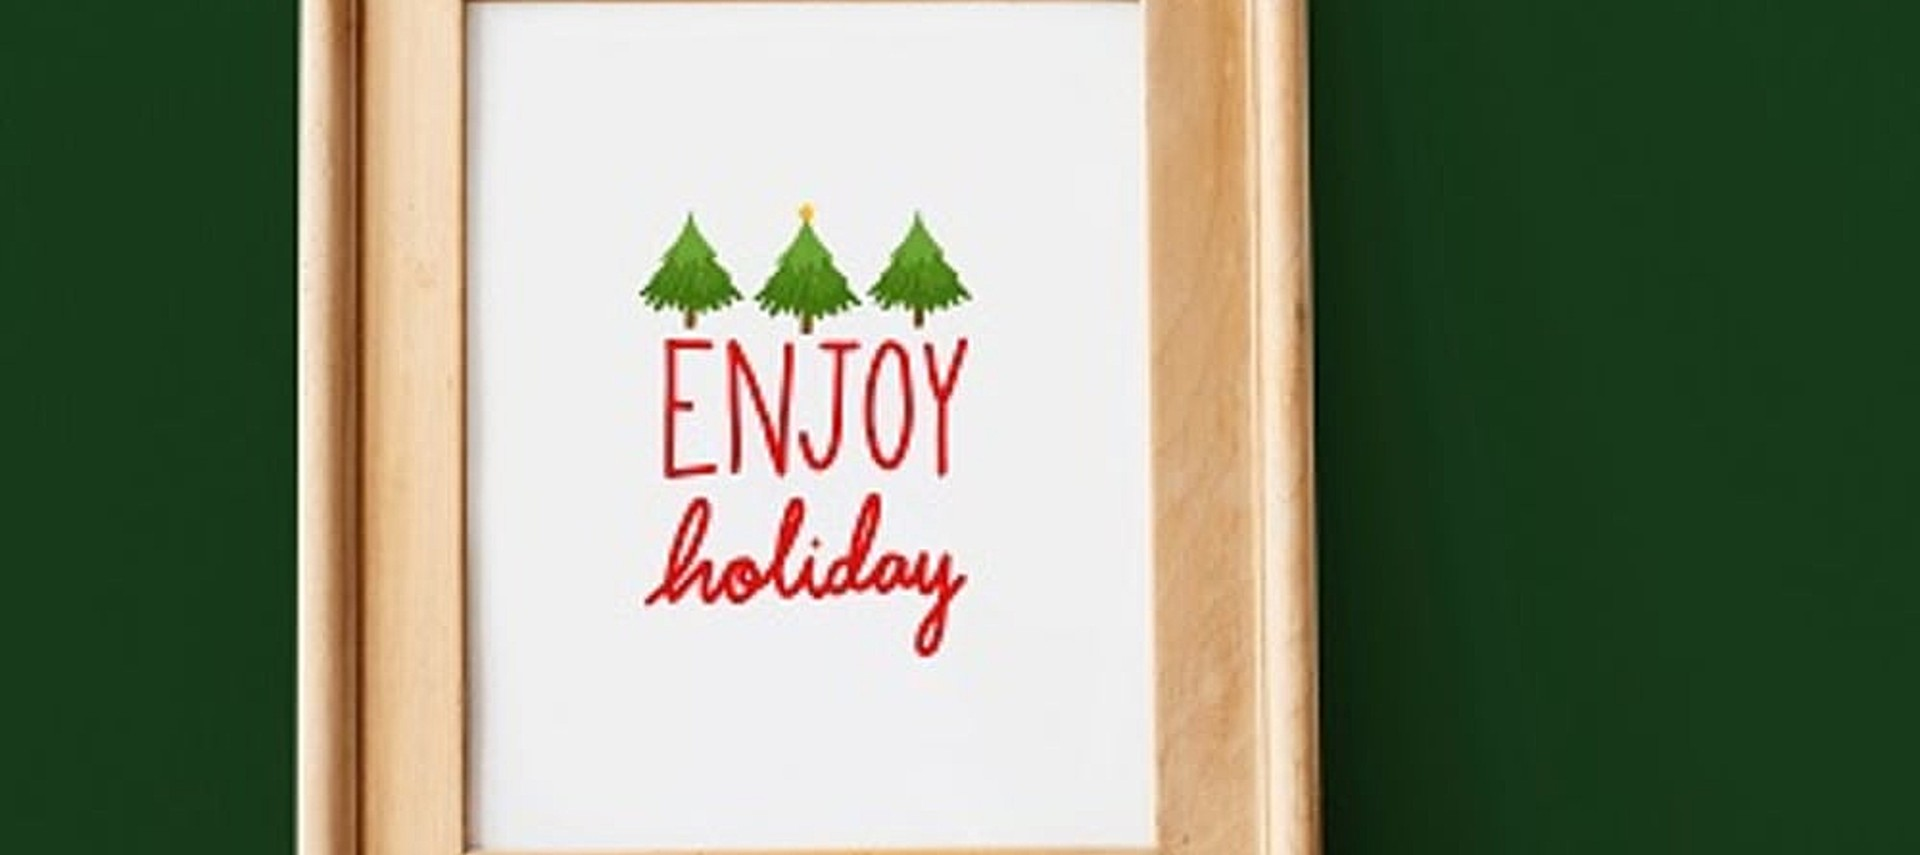 A light brown frame with a white image showing three Christmas trees and the text Enjoy Holiday in red.